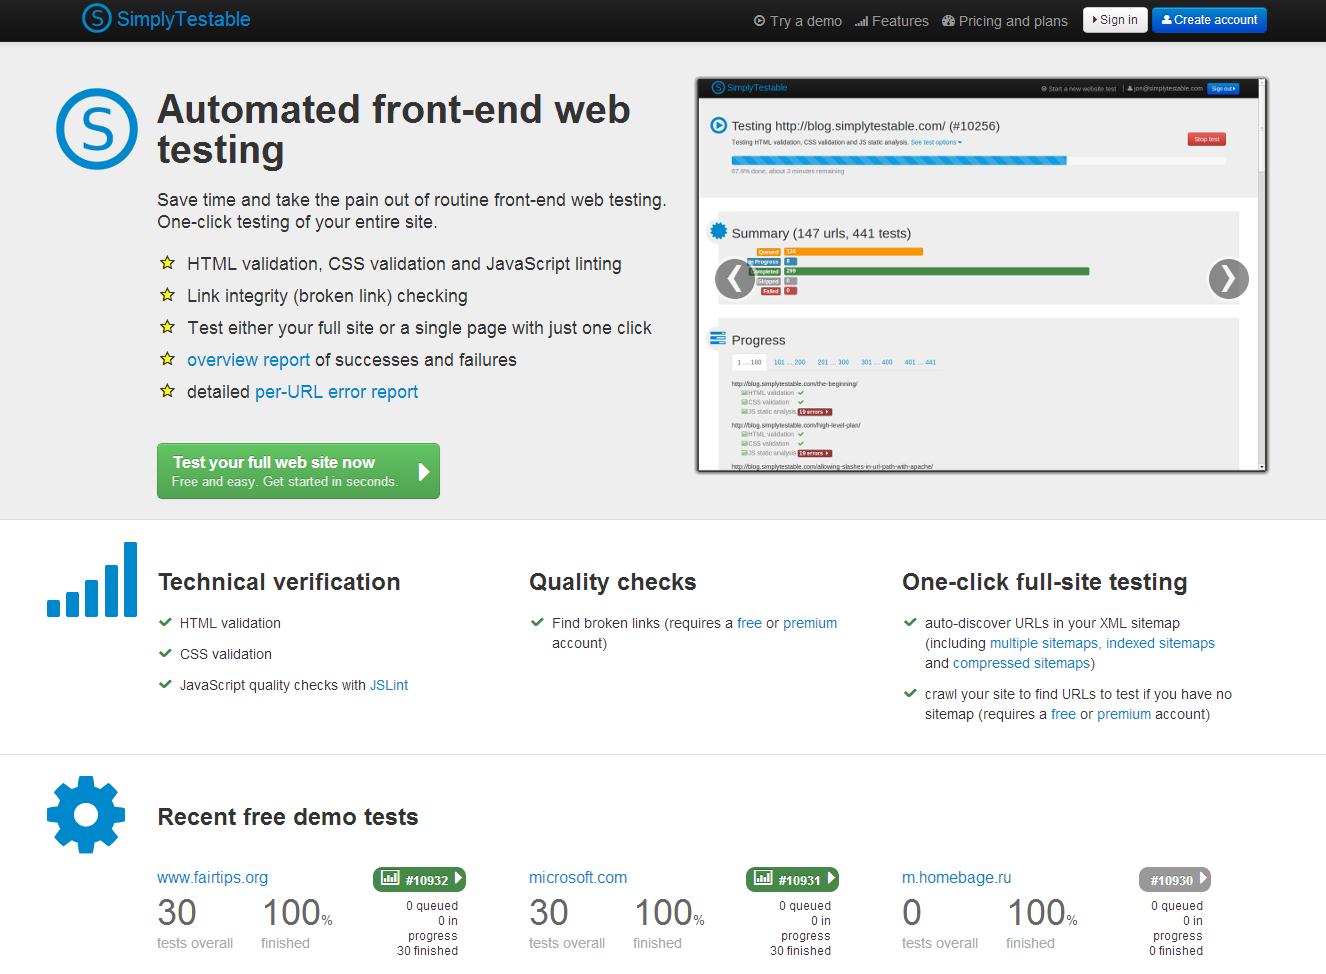 Simply Testable - automated front end testing